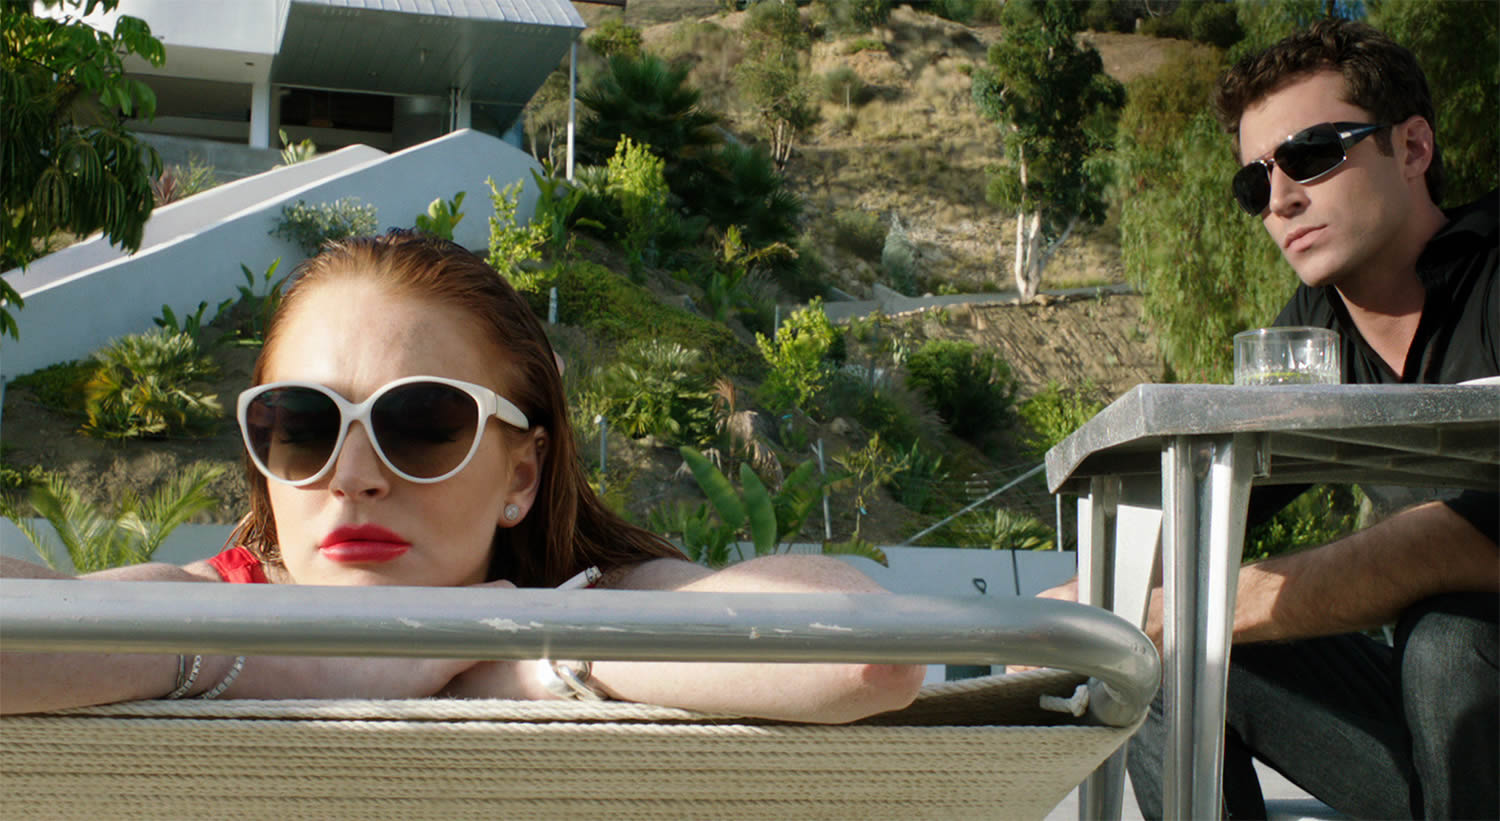 lindsay lohan in the canyons movie, lying and sunbathing